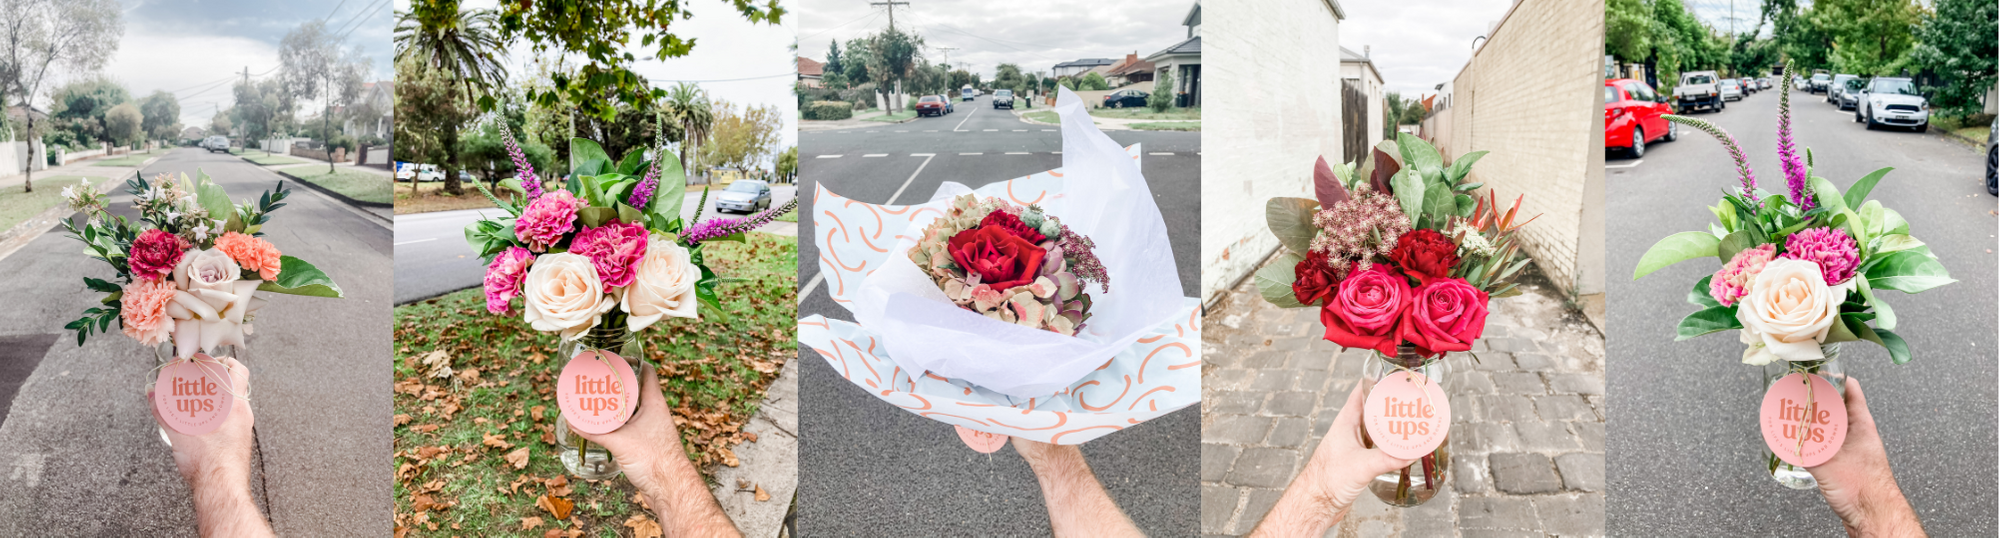 Fresh flower jars and bunches delivered daily and captured in lots of different suburbs across Melbourne. They are being held up in the street by our Flower Delivery Specialist.